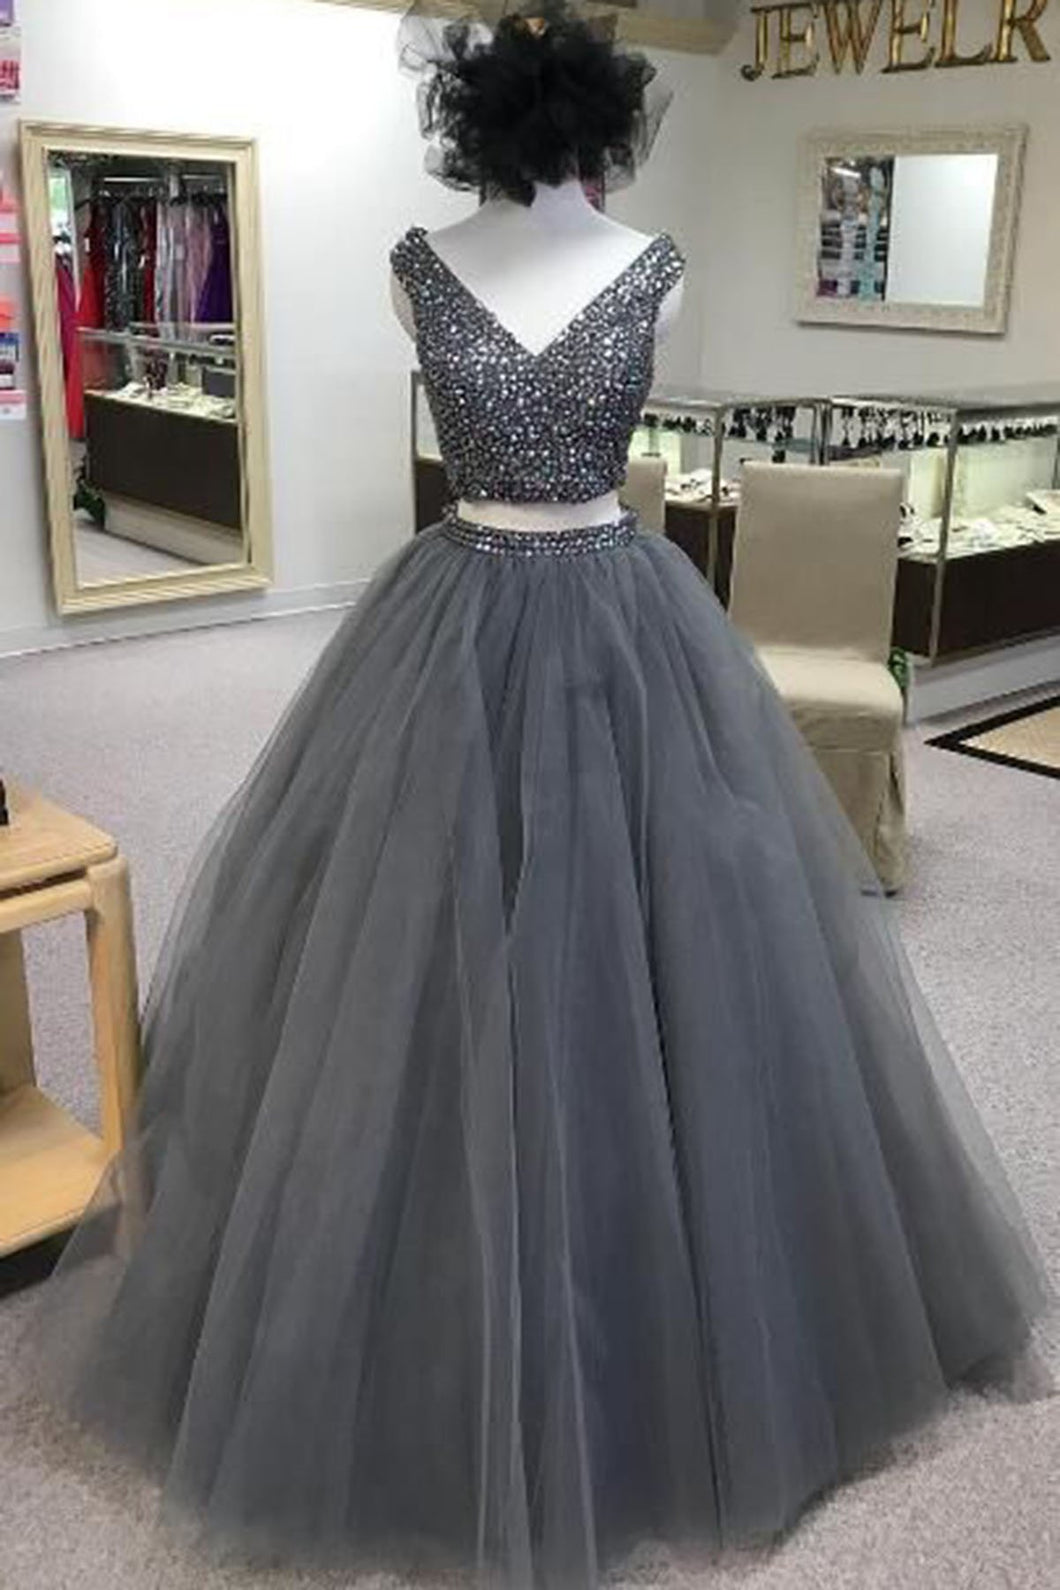 Sweet 16 Dresses | Gray tulle two piece V neck long beaded homecoming dress, gray long party dress